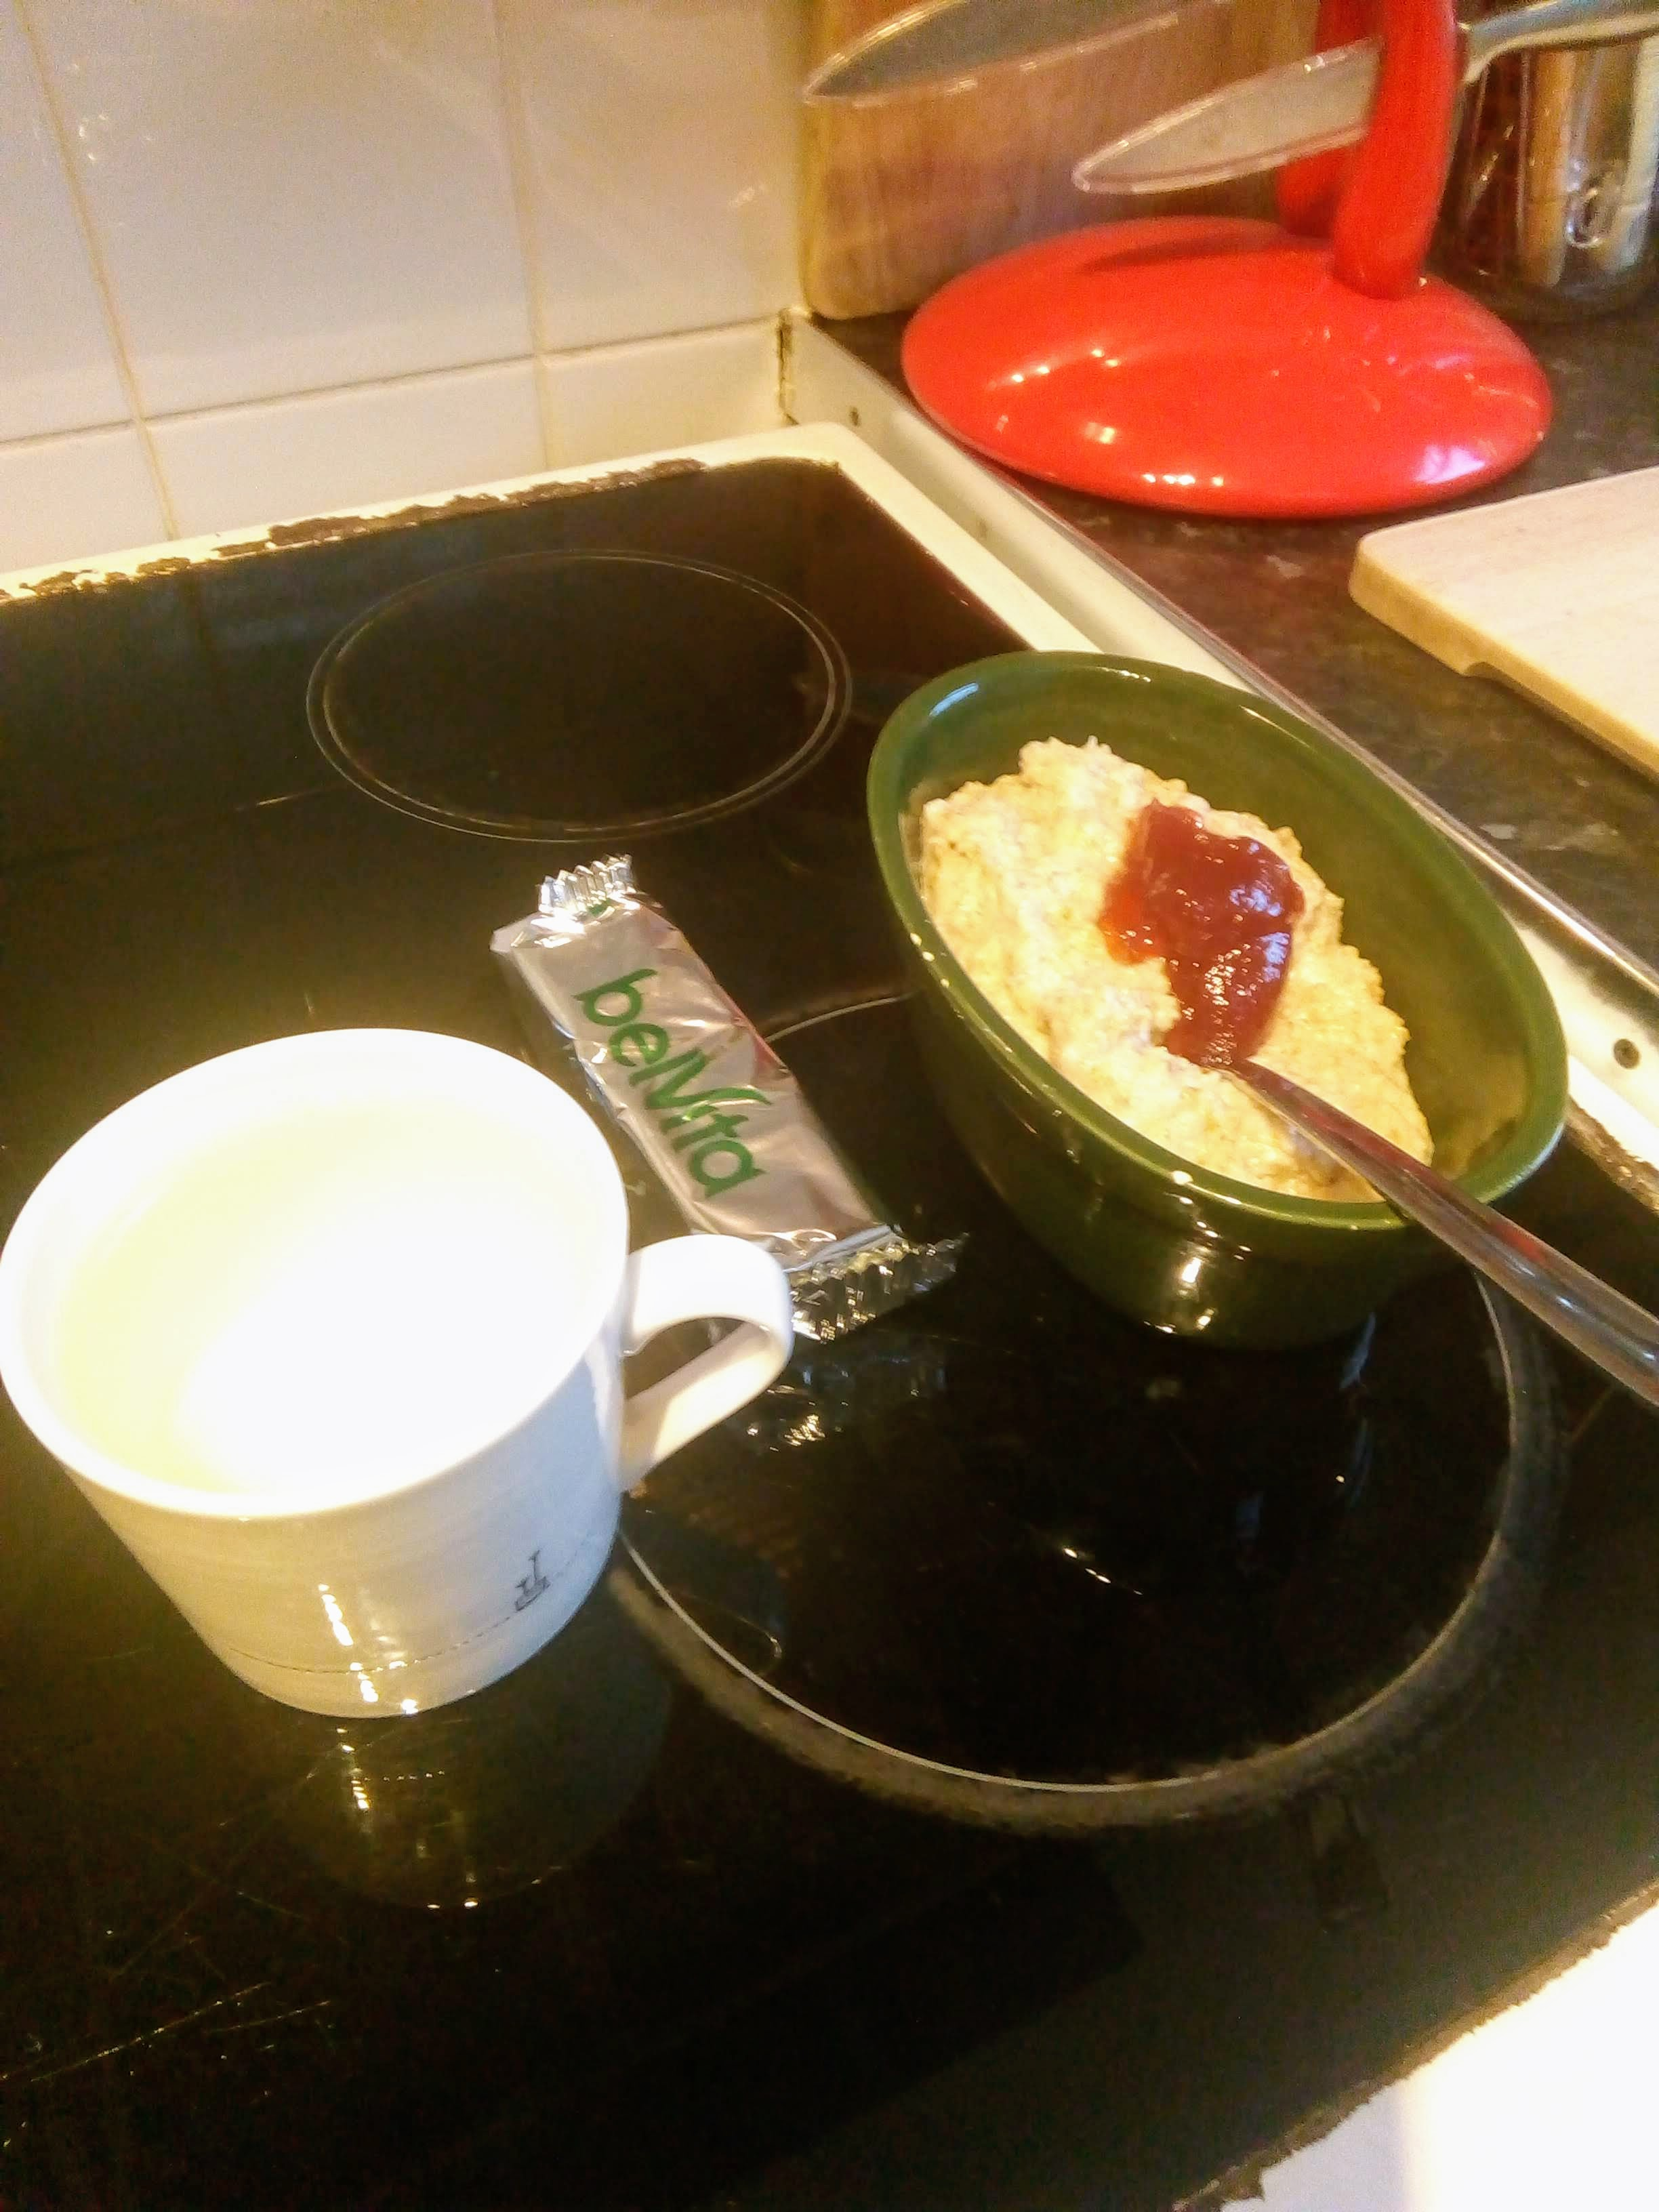 A bowl of porridge, my breakfast biscuits and a mug of water.